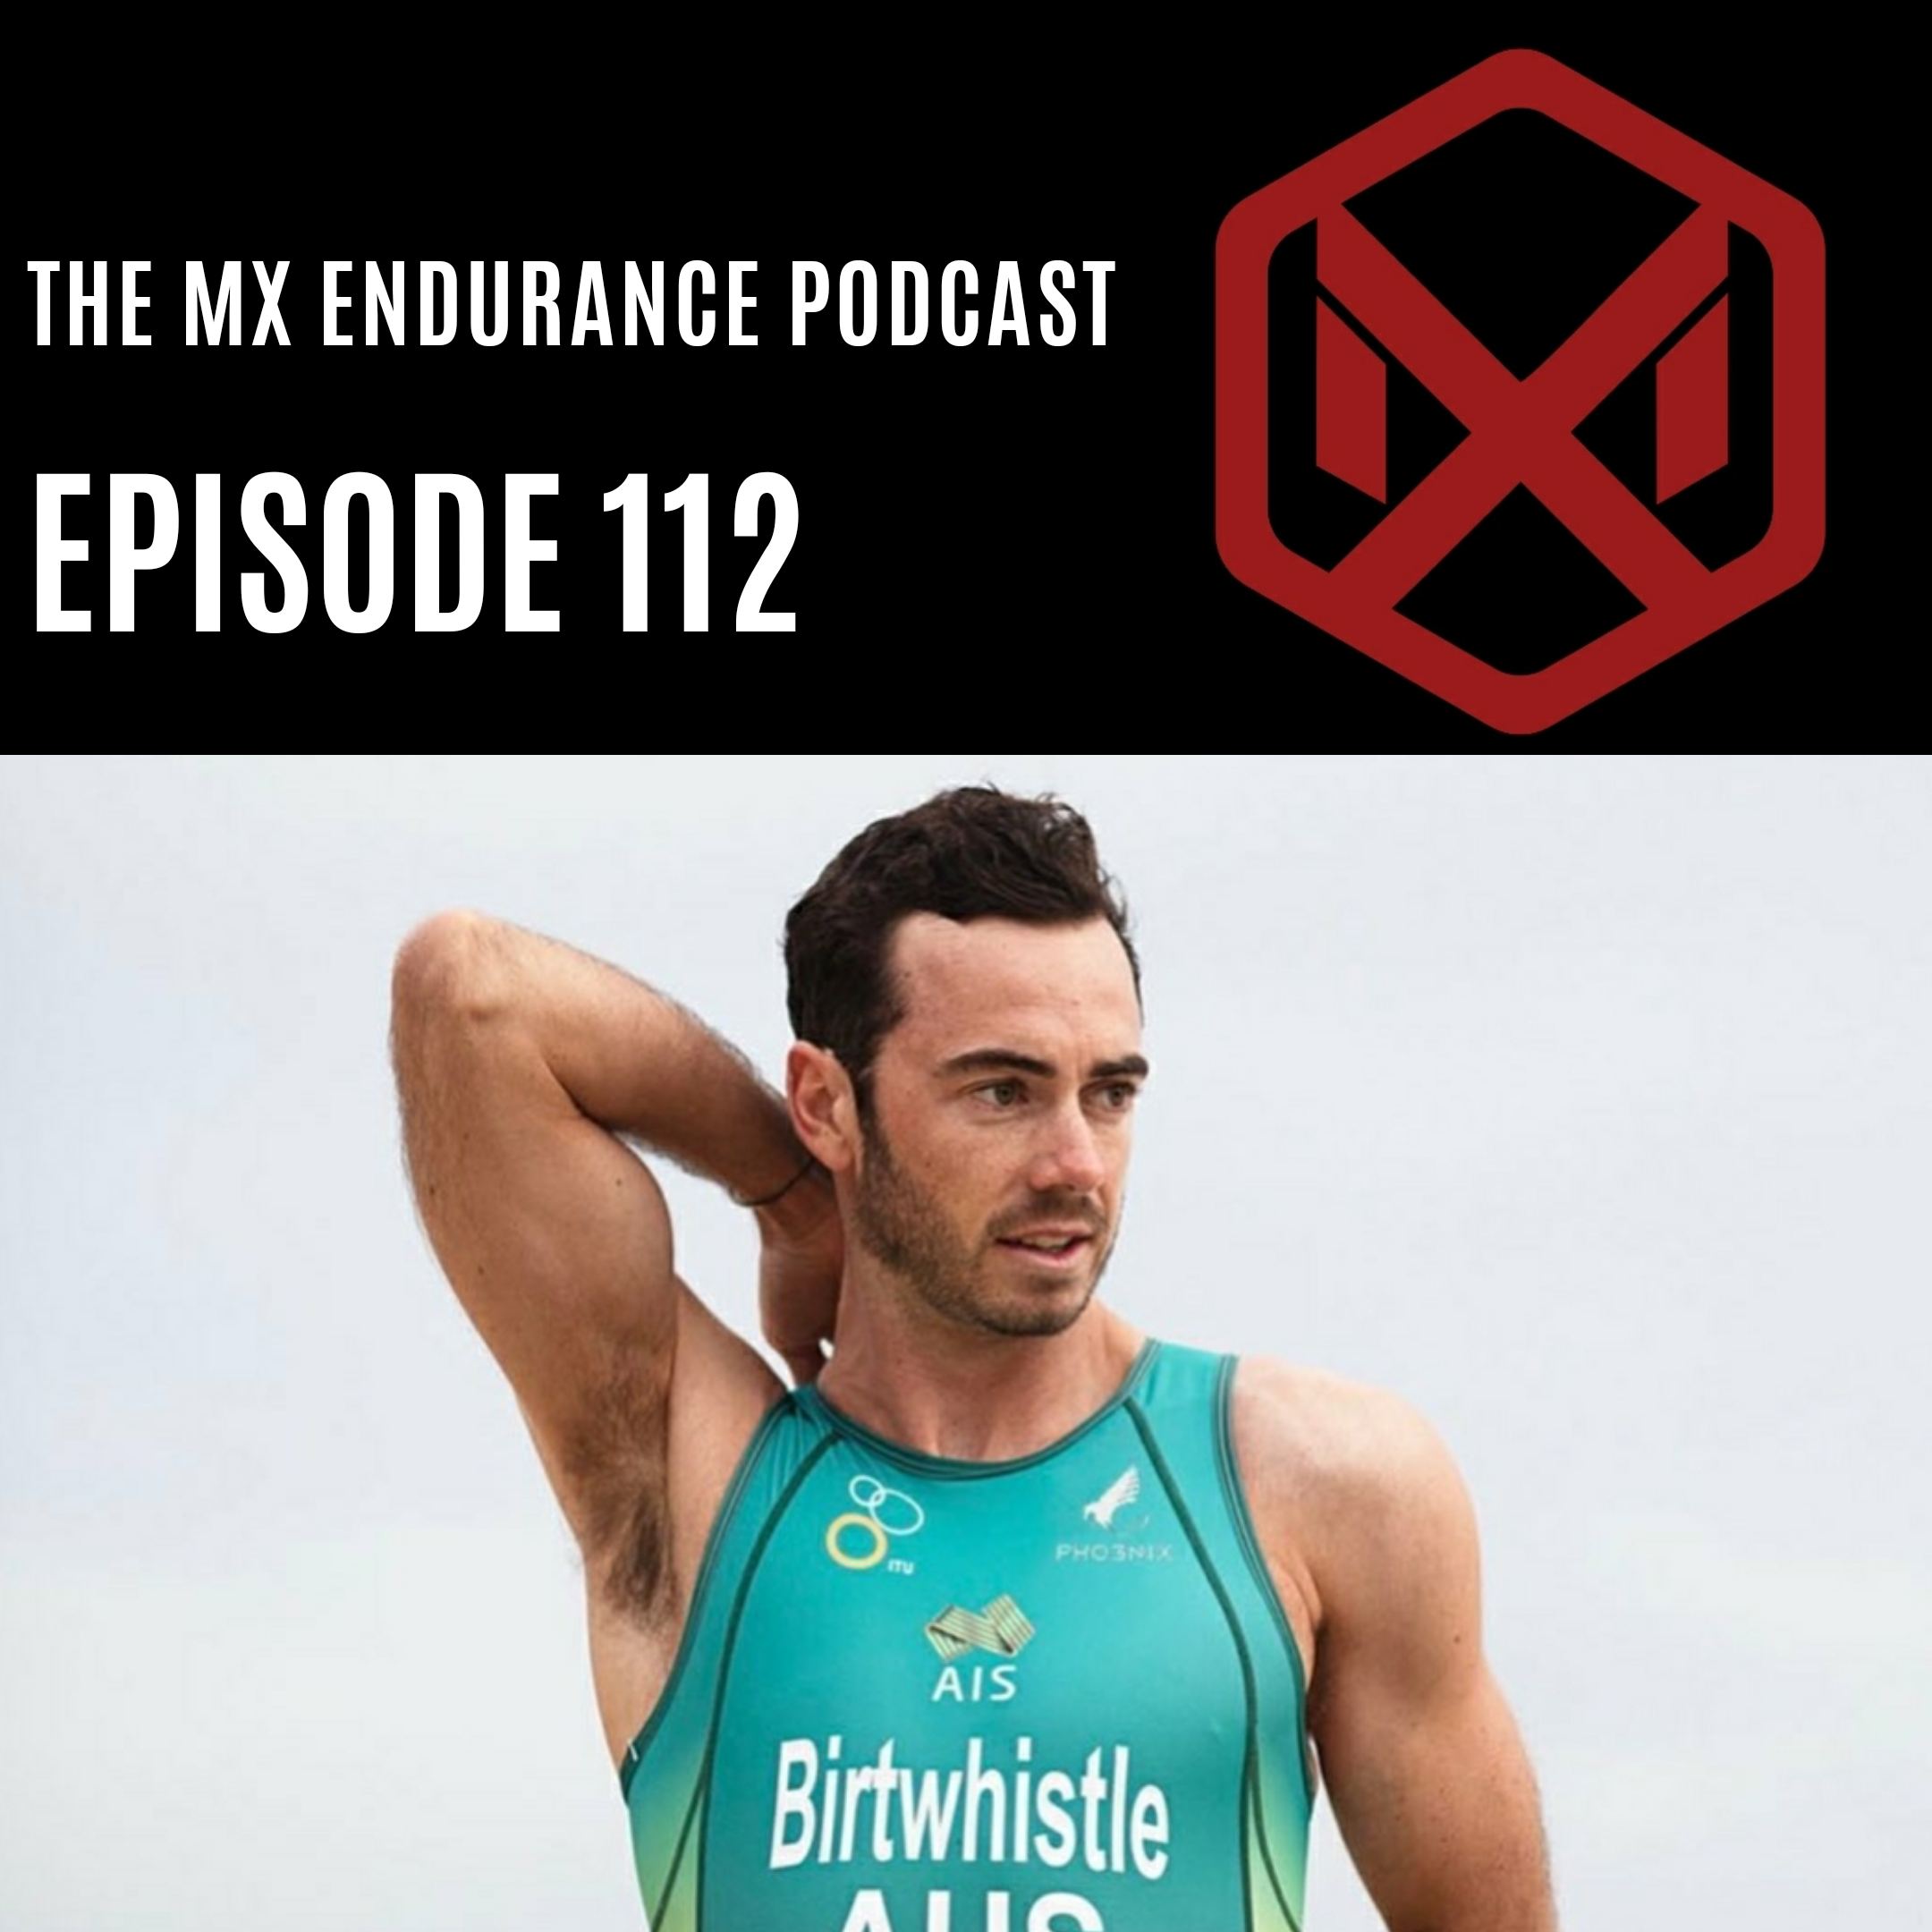 #112 - Is Jan Frodeno Injured? Insight into the Pho3nix Foundation with Jake Birtwhistle